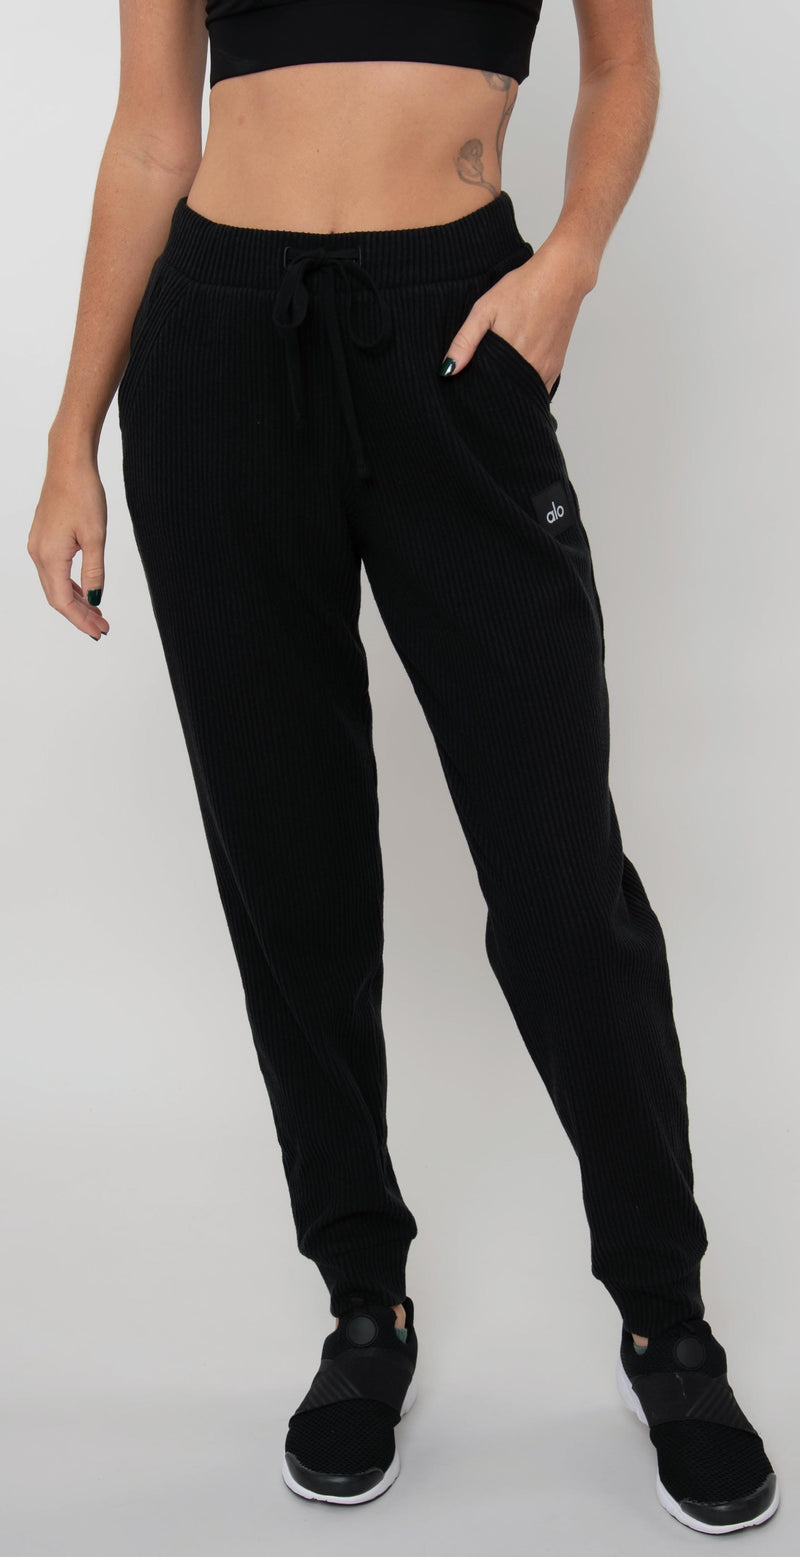 Alo Yoga Muse Sweatpant Black